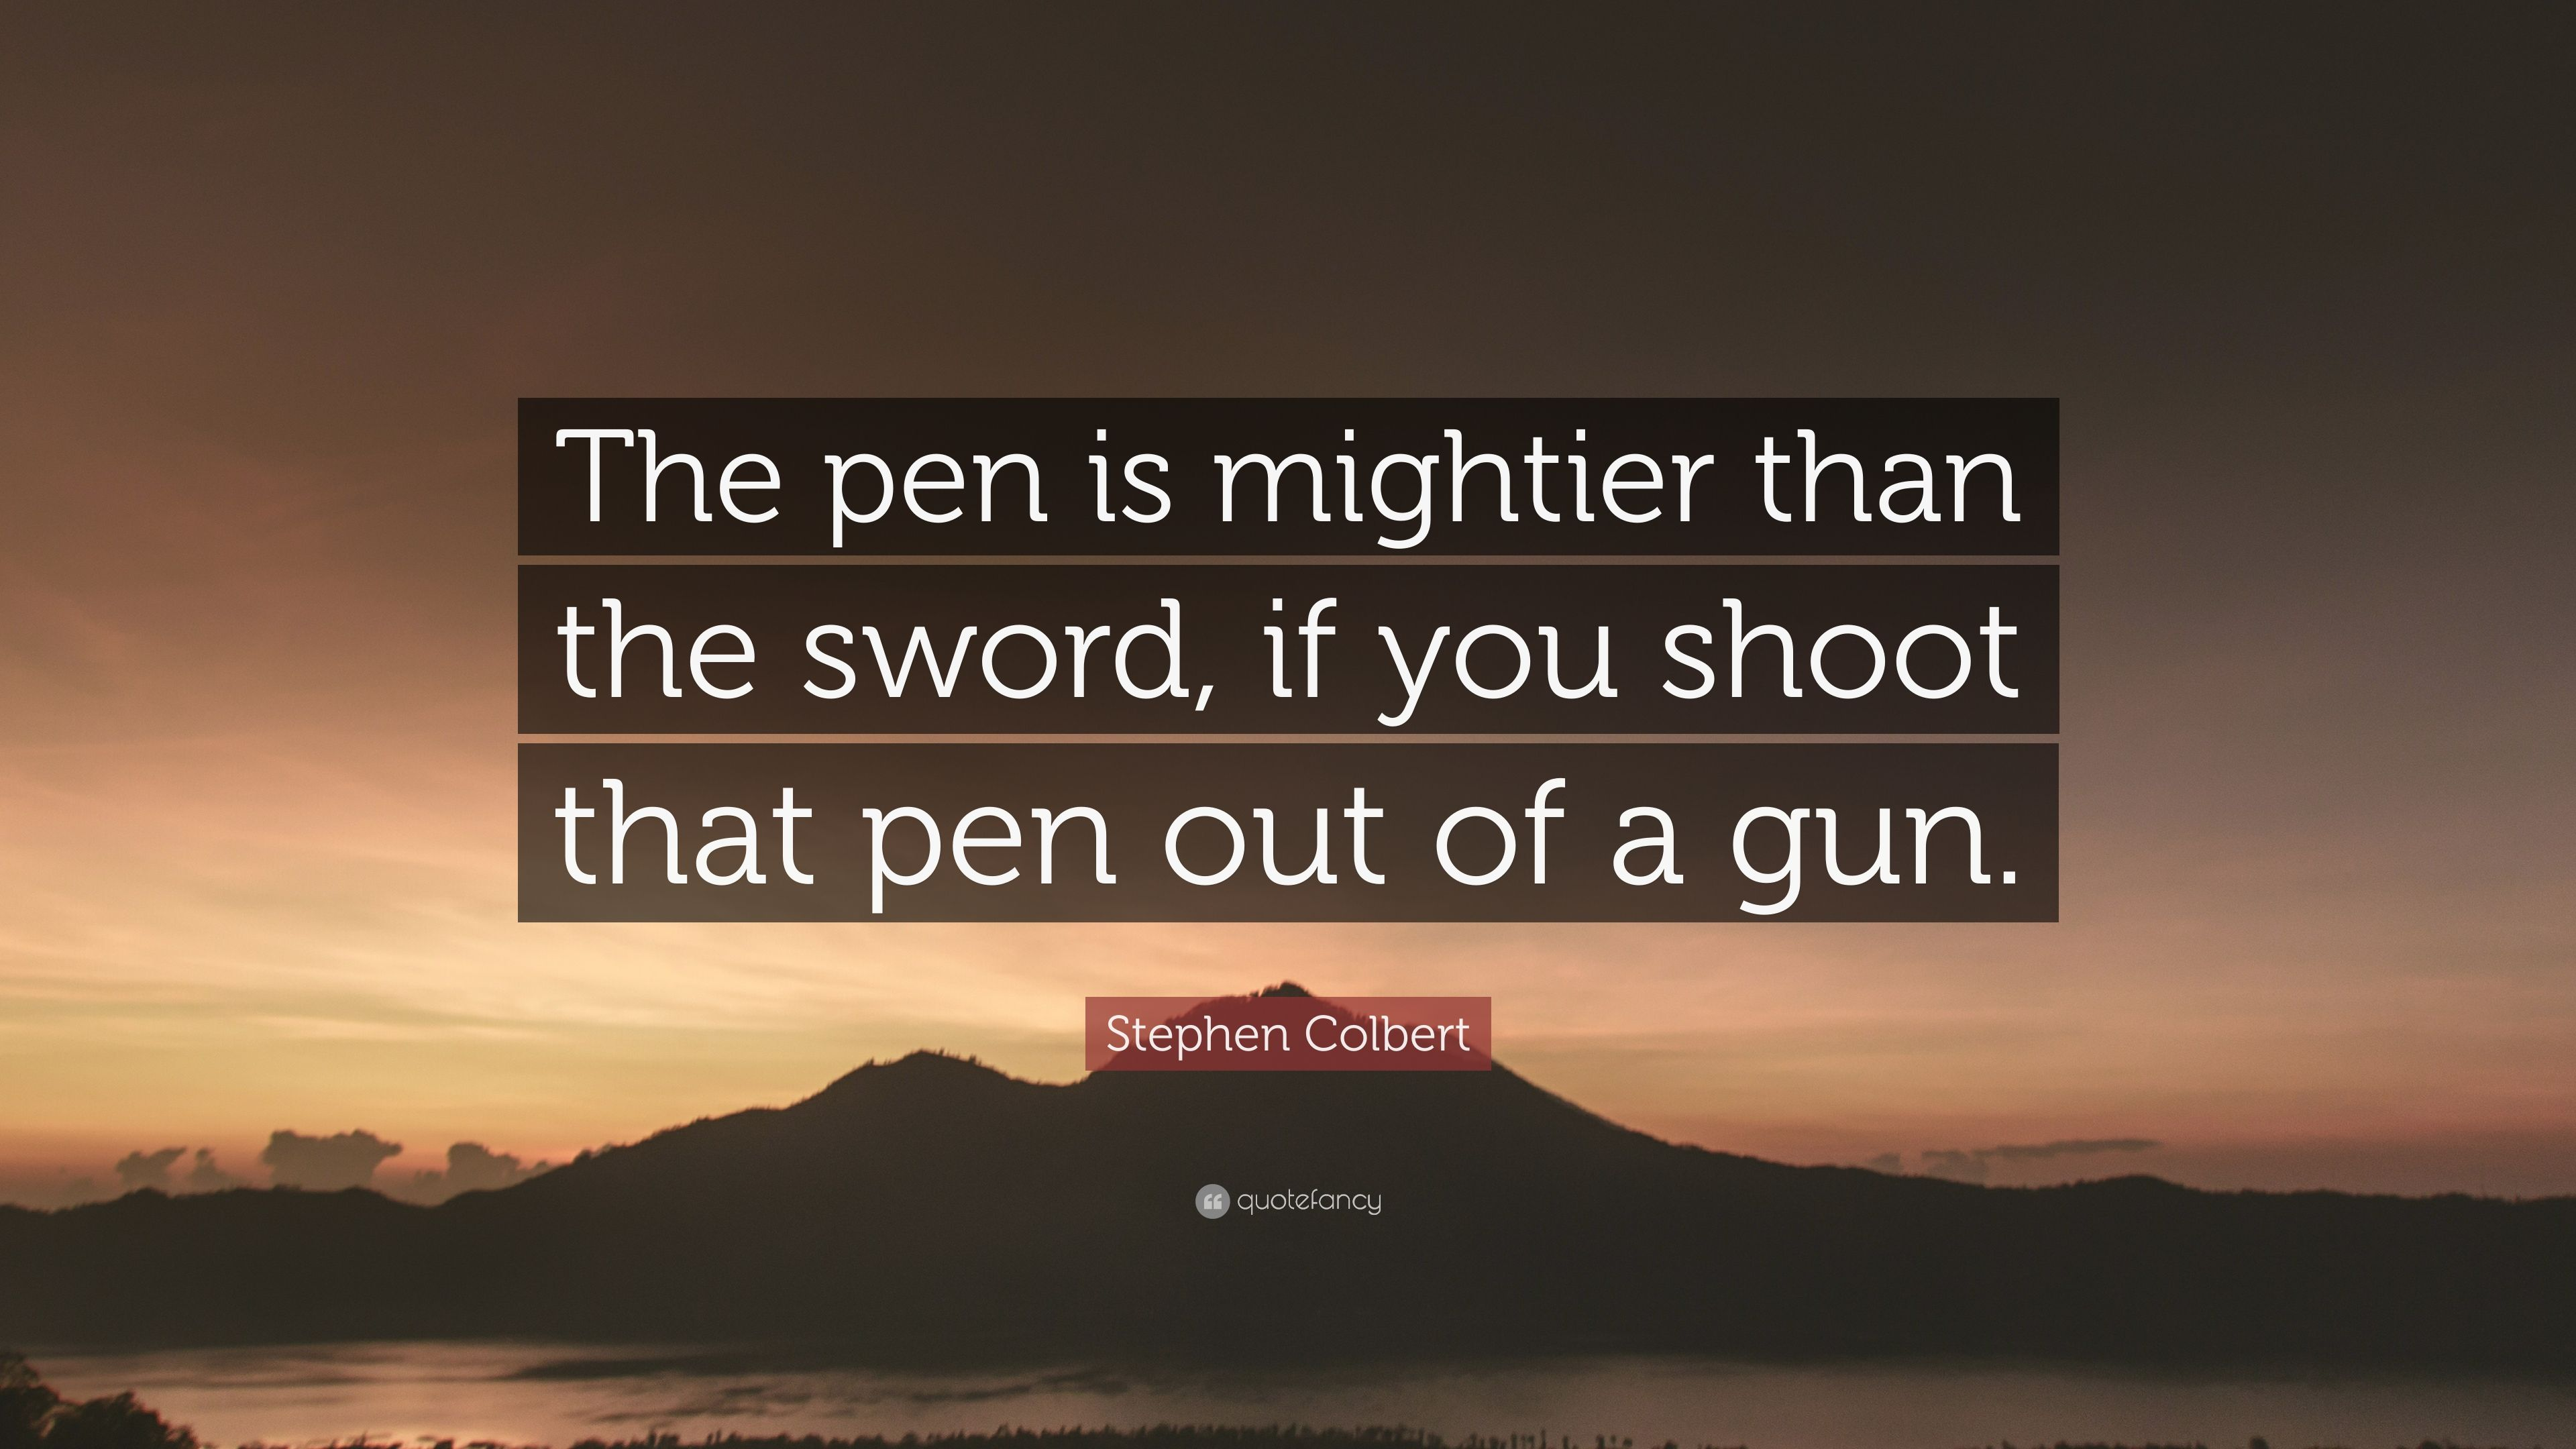 pens is mighter than the sword You've got to live by the pen 'cause it's mightier than the sword every man is me, every man is you i can't tell you what you've got to do you've got to live by the pen, it's mightier than the sword.